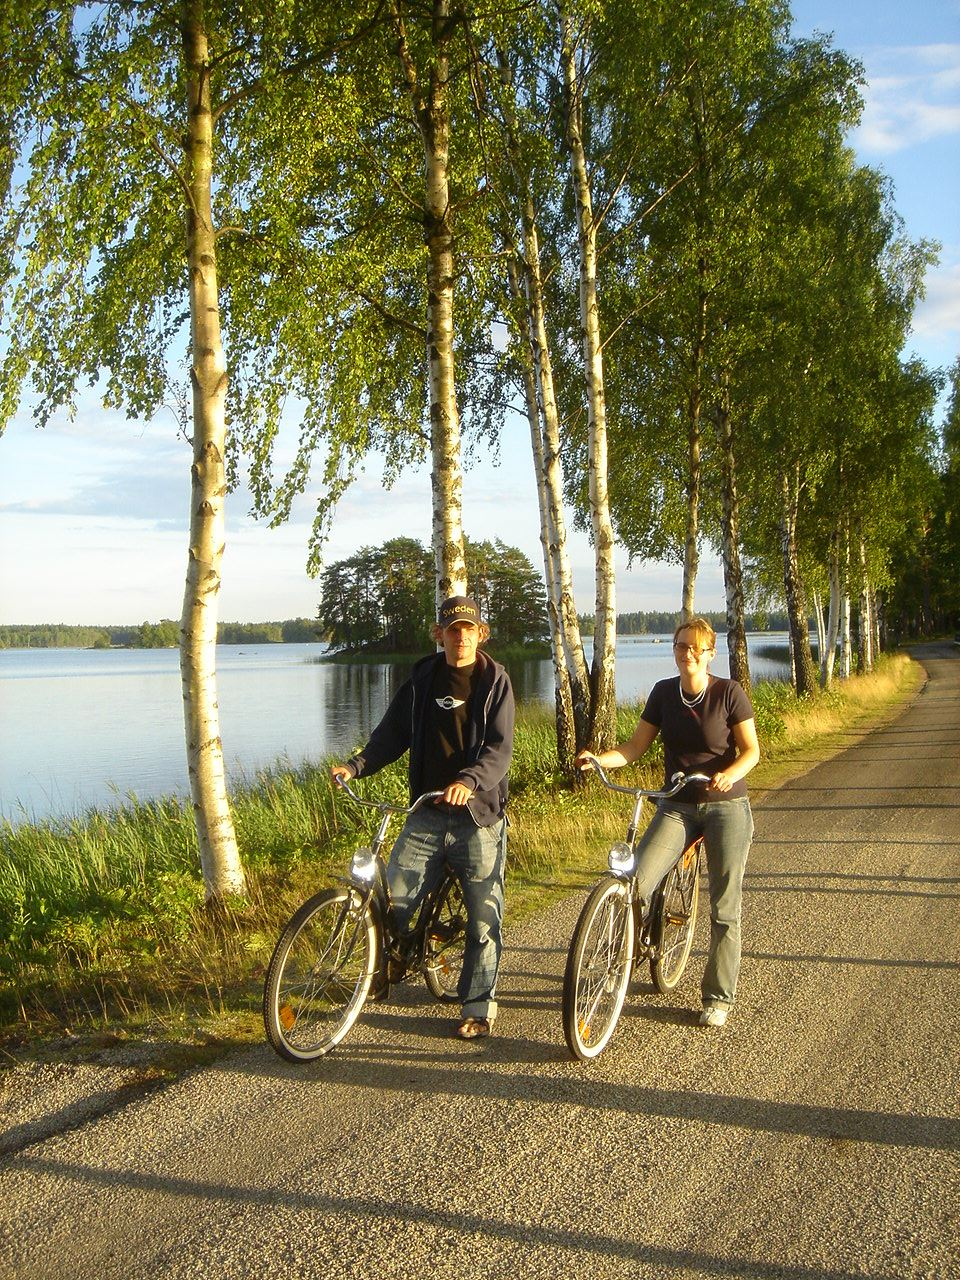 Getnö Gård, Getnö - Lake Åsnen Resort Activity Centre